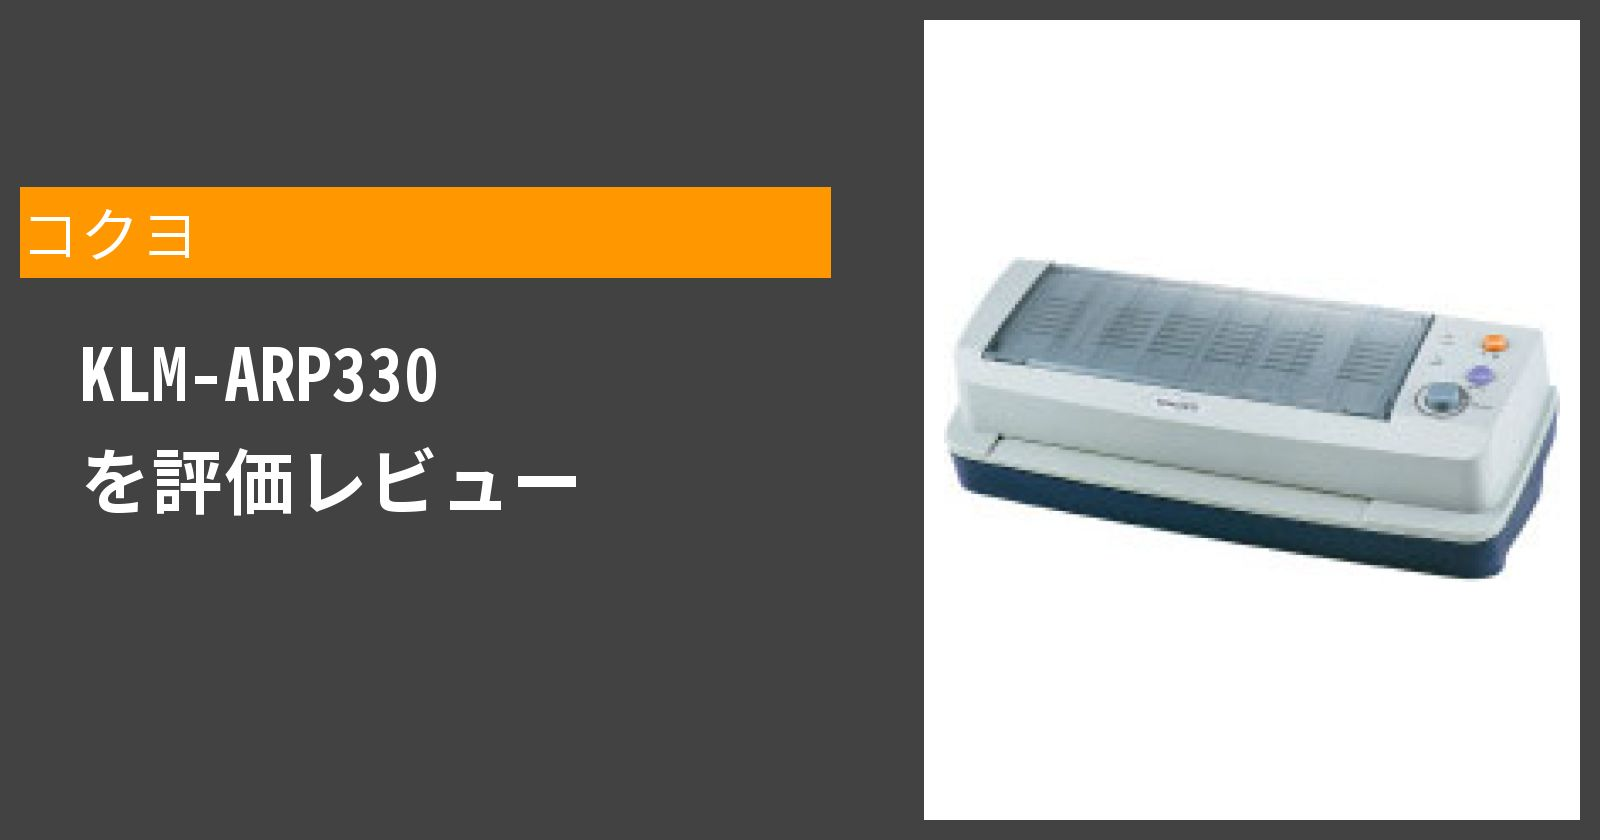 KLM-ARP330を徹底評価